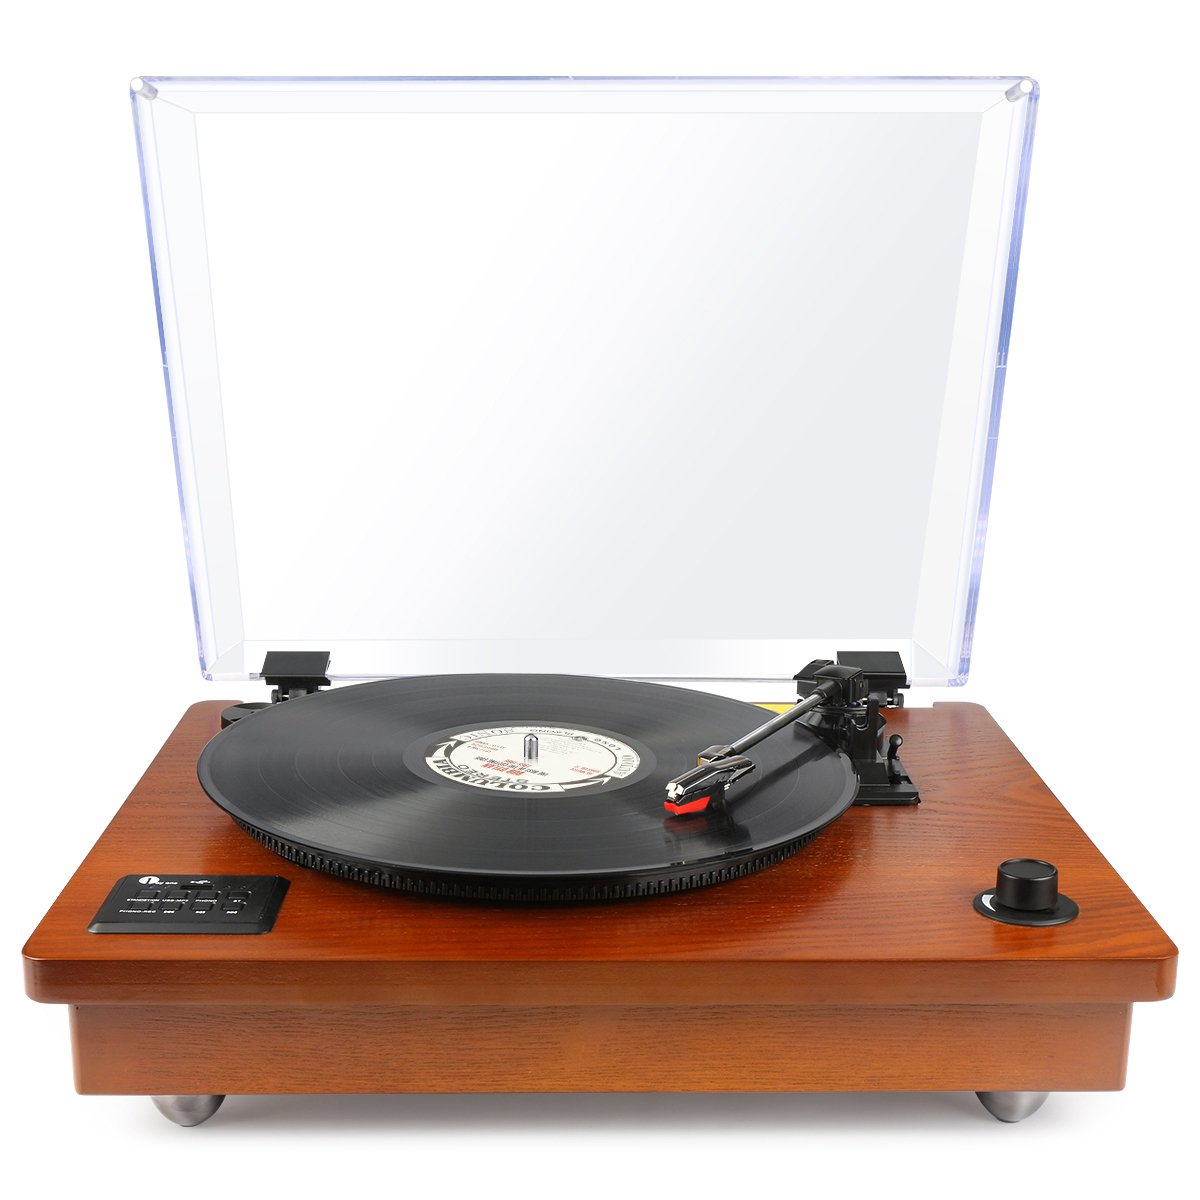 1byone Belt Driven Turntable with Built in Stereo Speaker, Wireless Connection Vintage Style Record Player, Vinyl to MP3 Recording, Natural Wood by 1 BY ONE